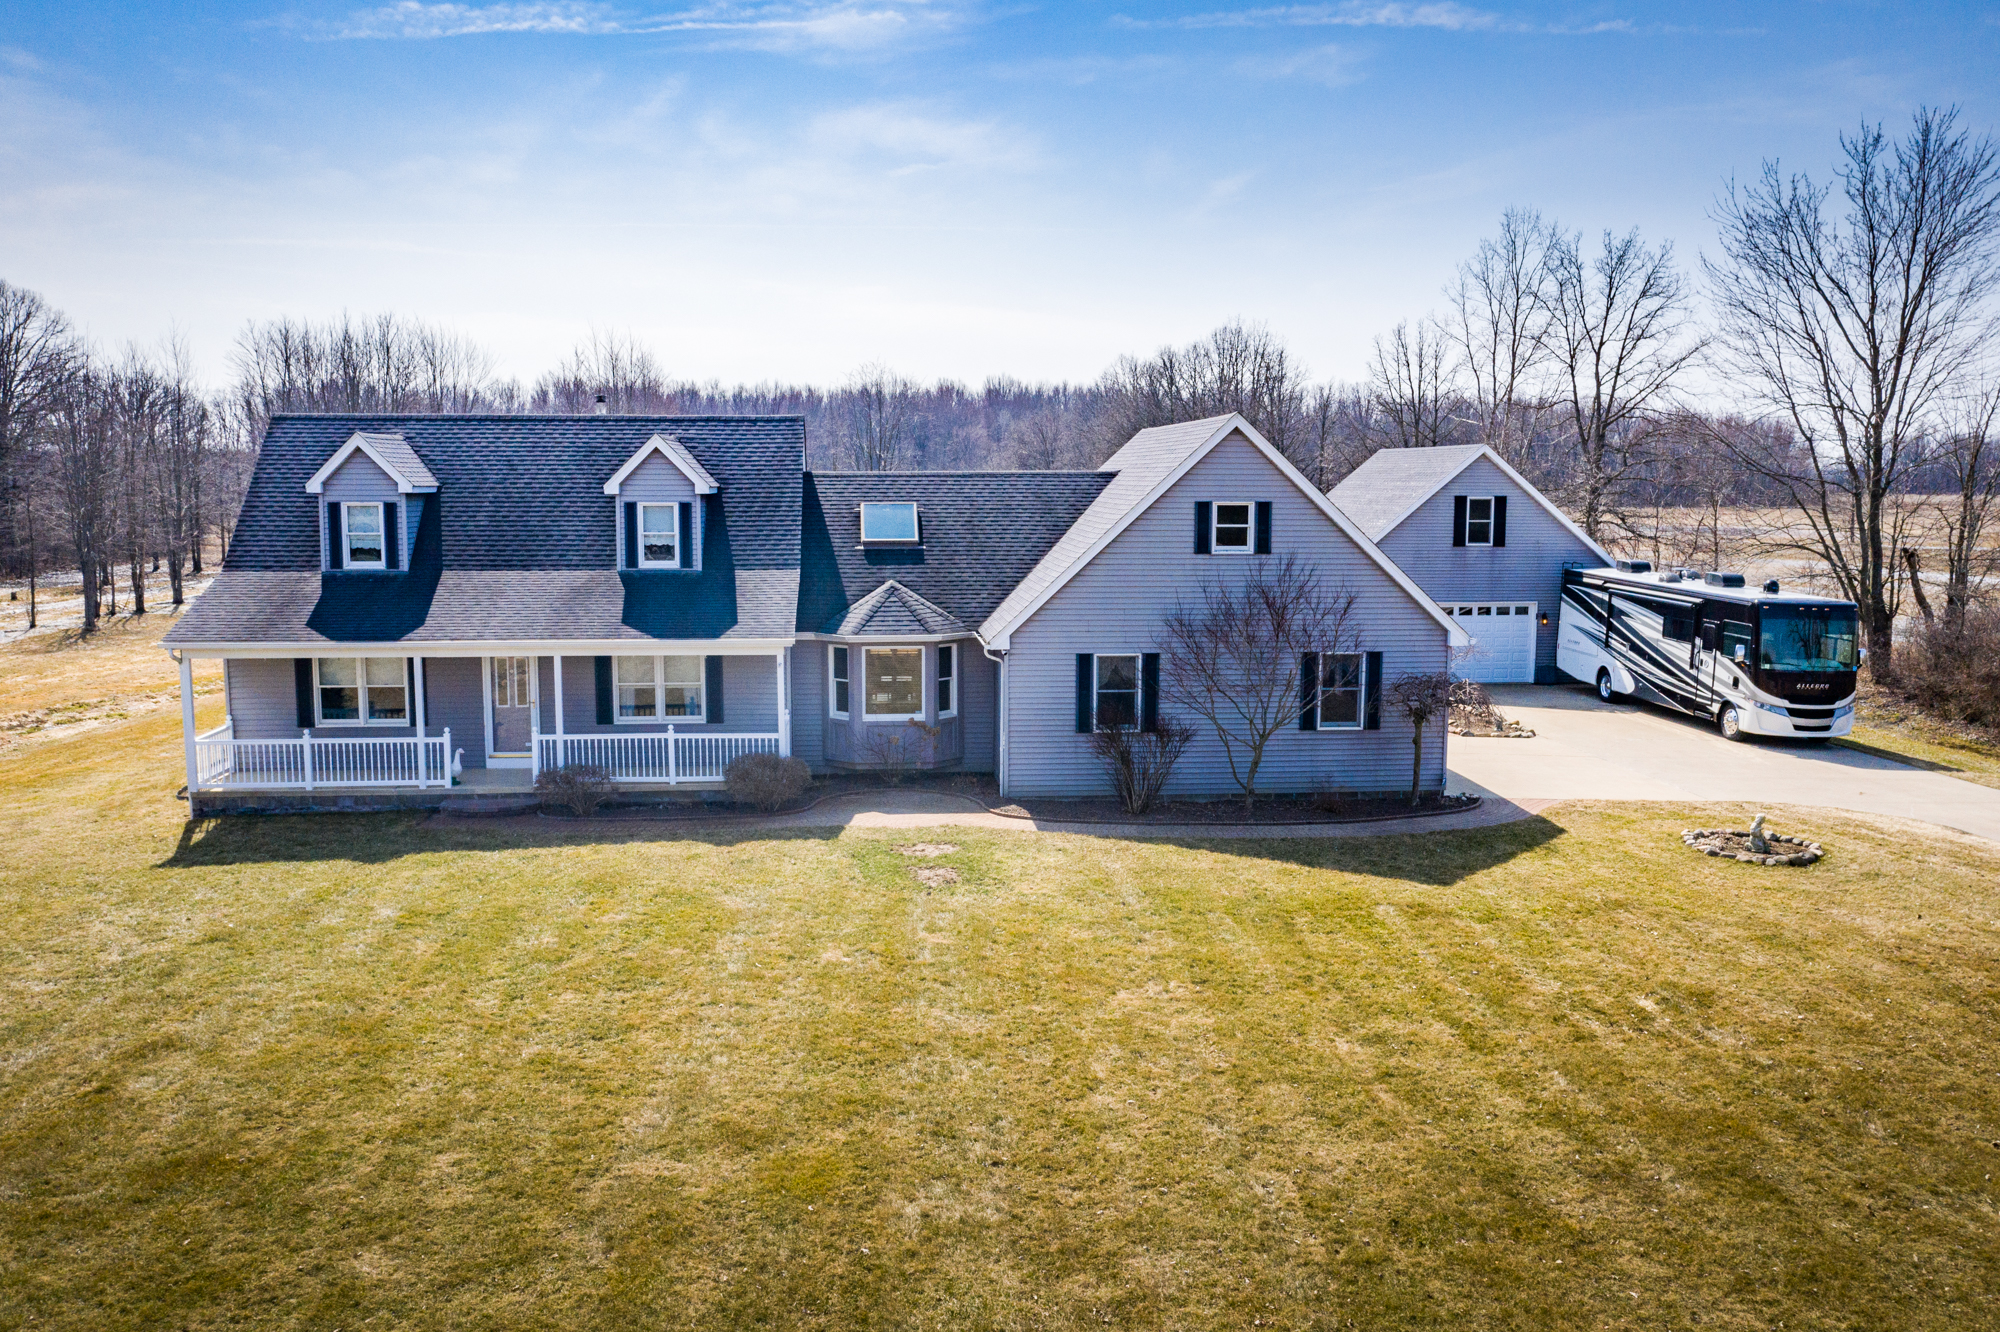 Dunnigan Rd, Emmett - $349,900   DOM 96 / Sold for 100% of asking price / 20 Showings